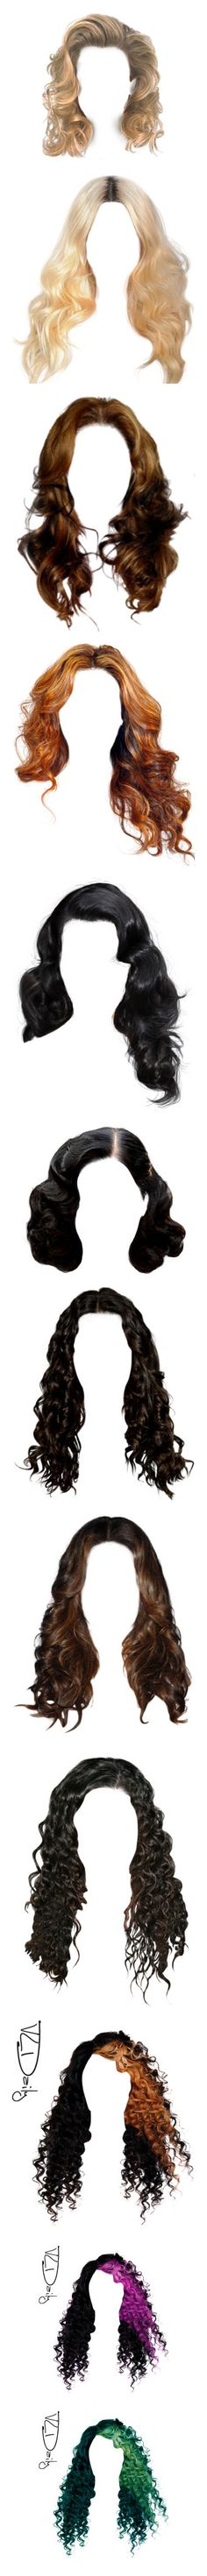 """Ultimate 'Doll Hair' Collection Pt. II"" by dazzlingdondiva ❤ liked on Polyvore featuring hair, doll parts, dolls, doll hair, wigs, hairstyles, beauty products, haircare, hair styling tools and body parts"